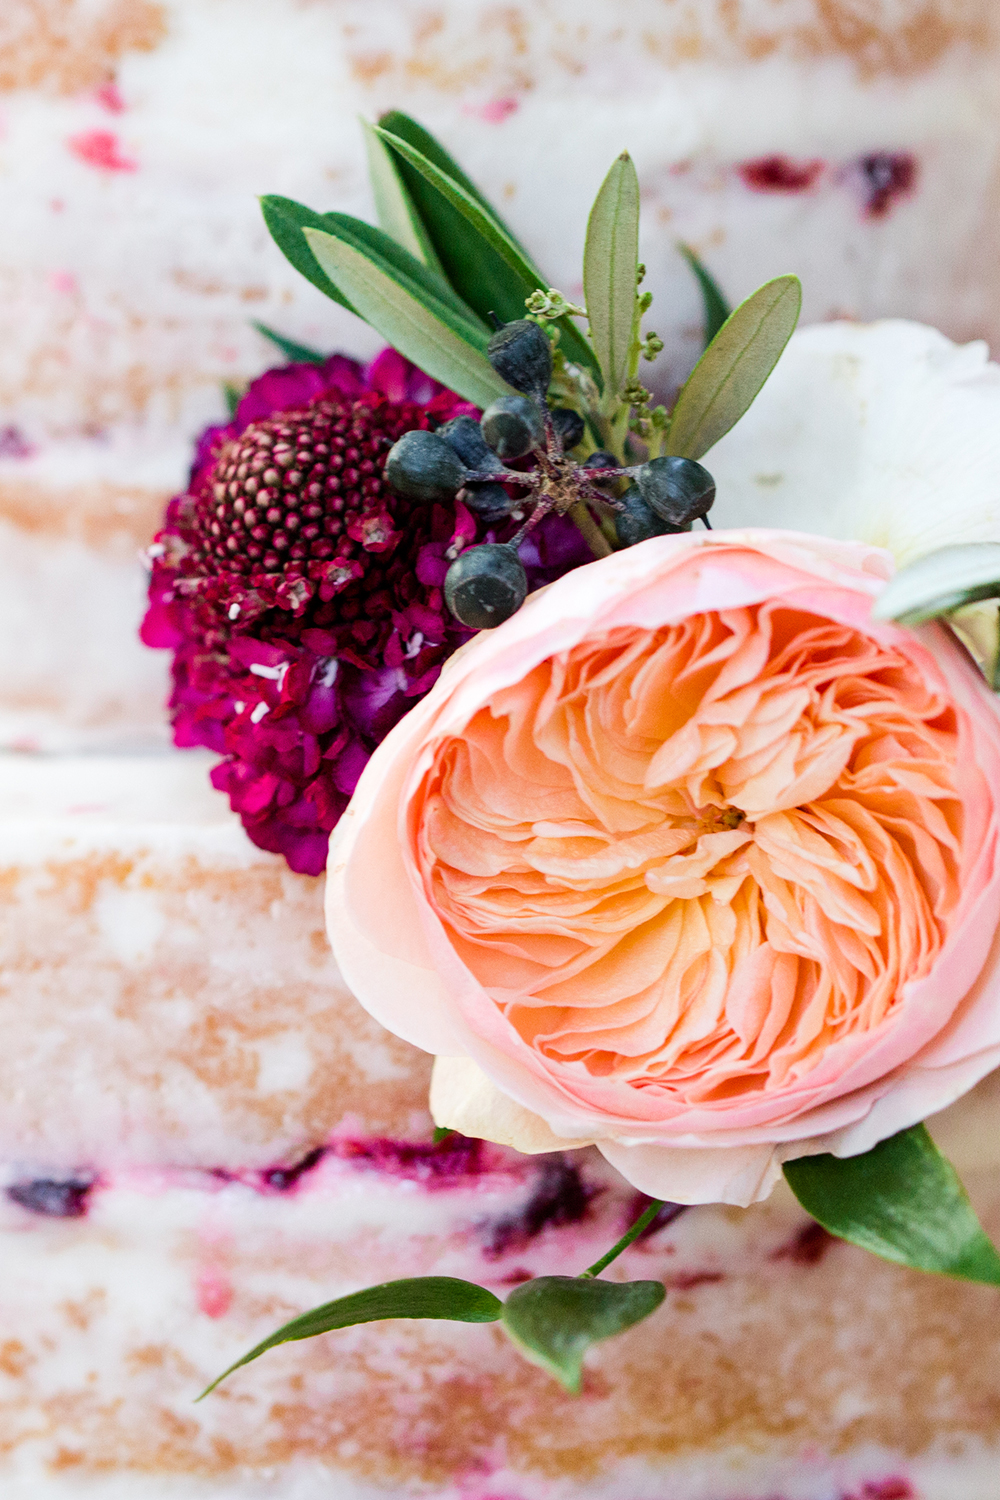 wedding cake flowers - photo by Lauren Lee Photography http://ruffledblog.com/modern-grecian-inspired-wedding-ideas